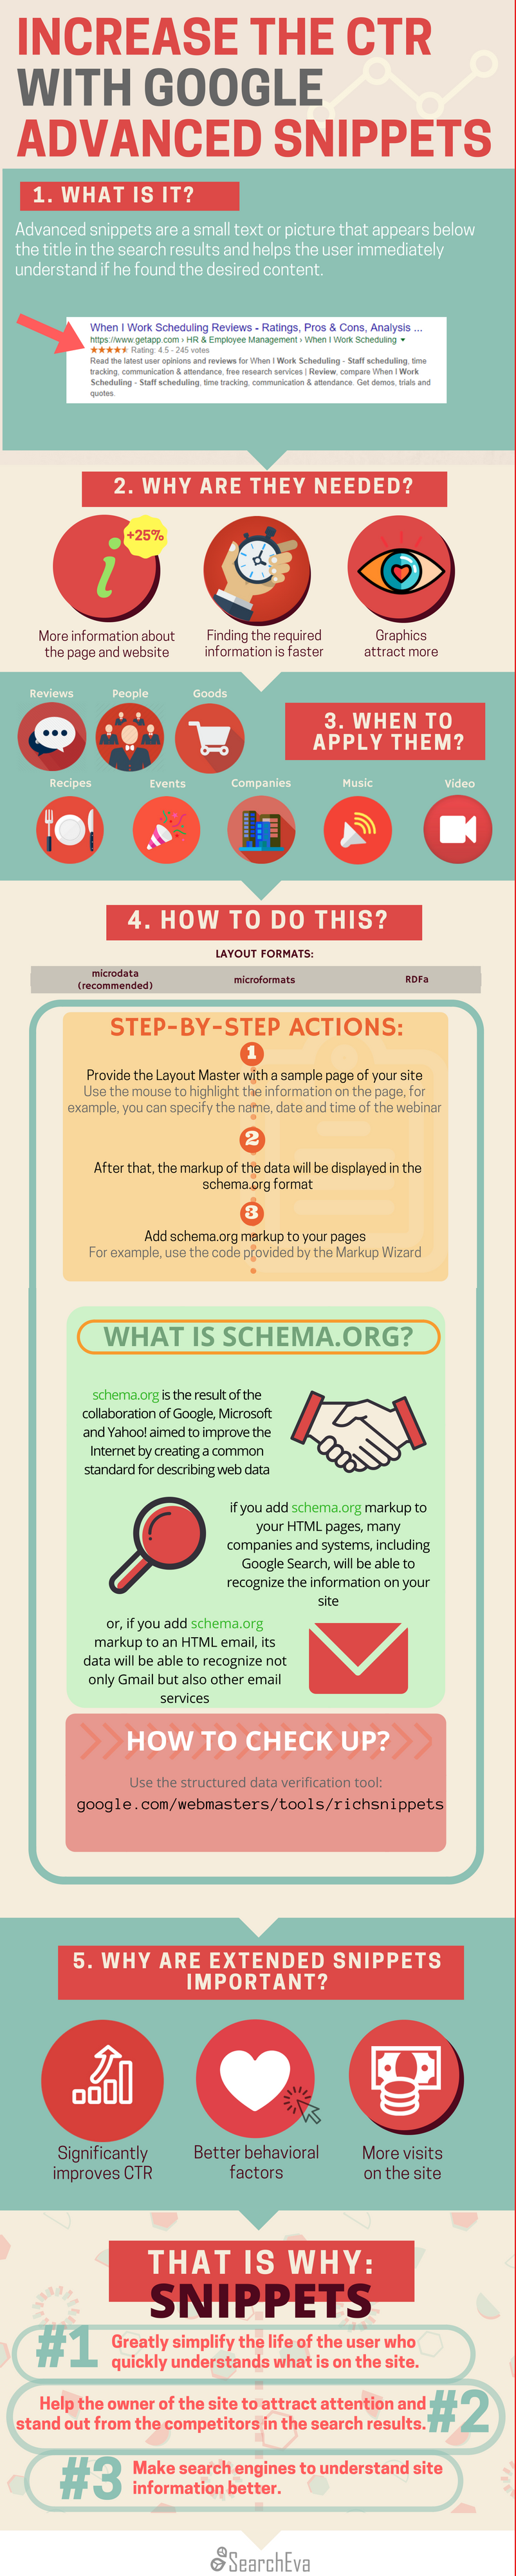 Infographic: Increase the CTR with Google Advanced Snippets